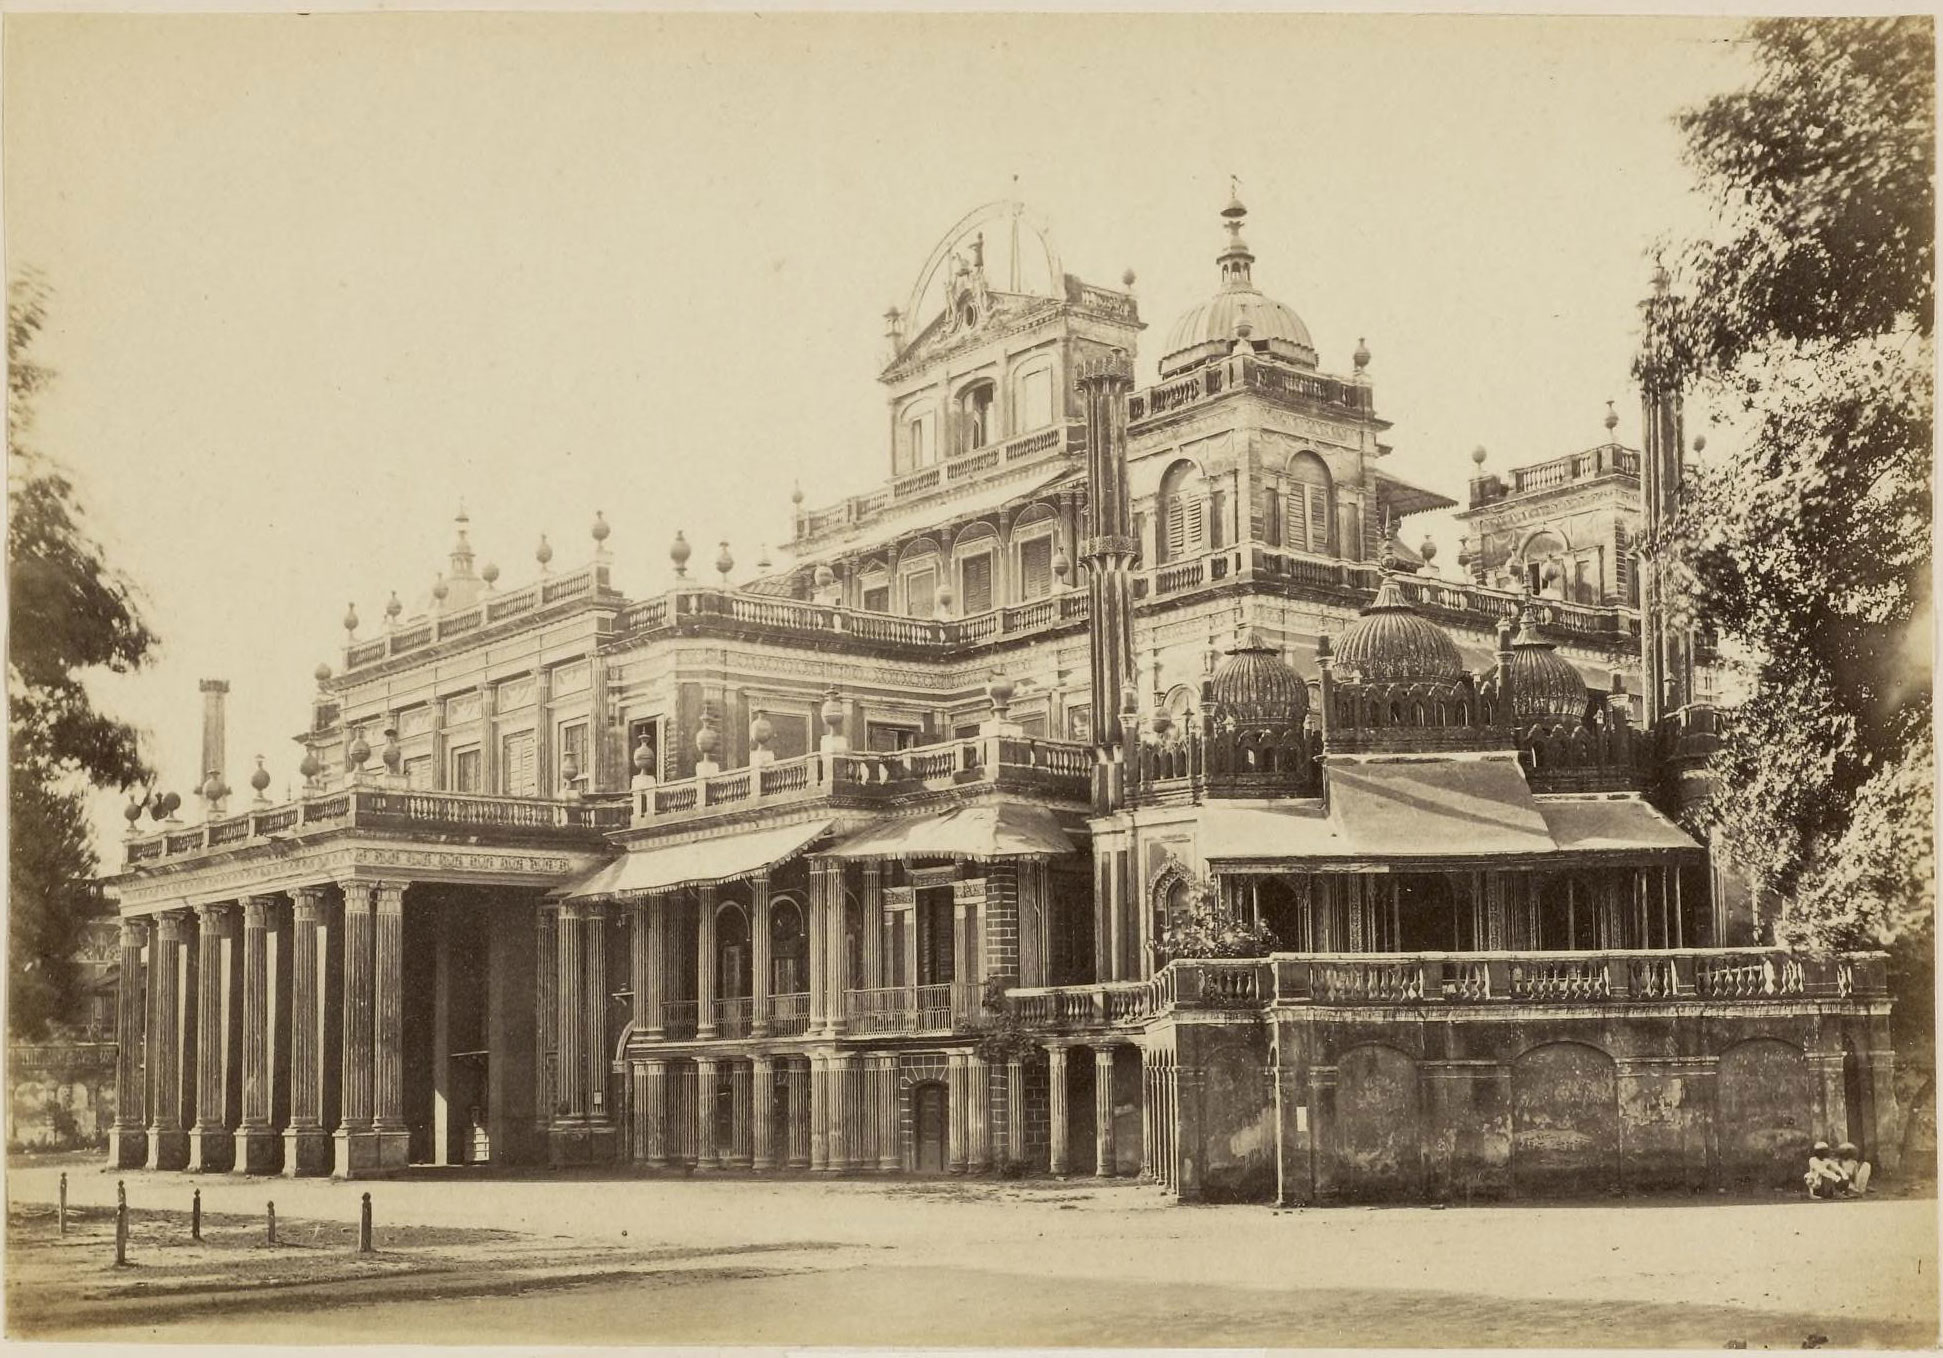 Kaiser pasand palace lucknow 1870 39 s old indian photos for Home architecture in lucknow